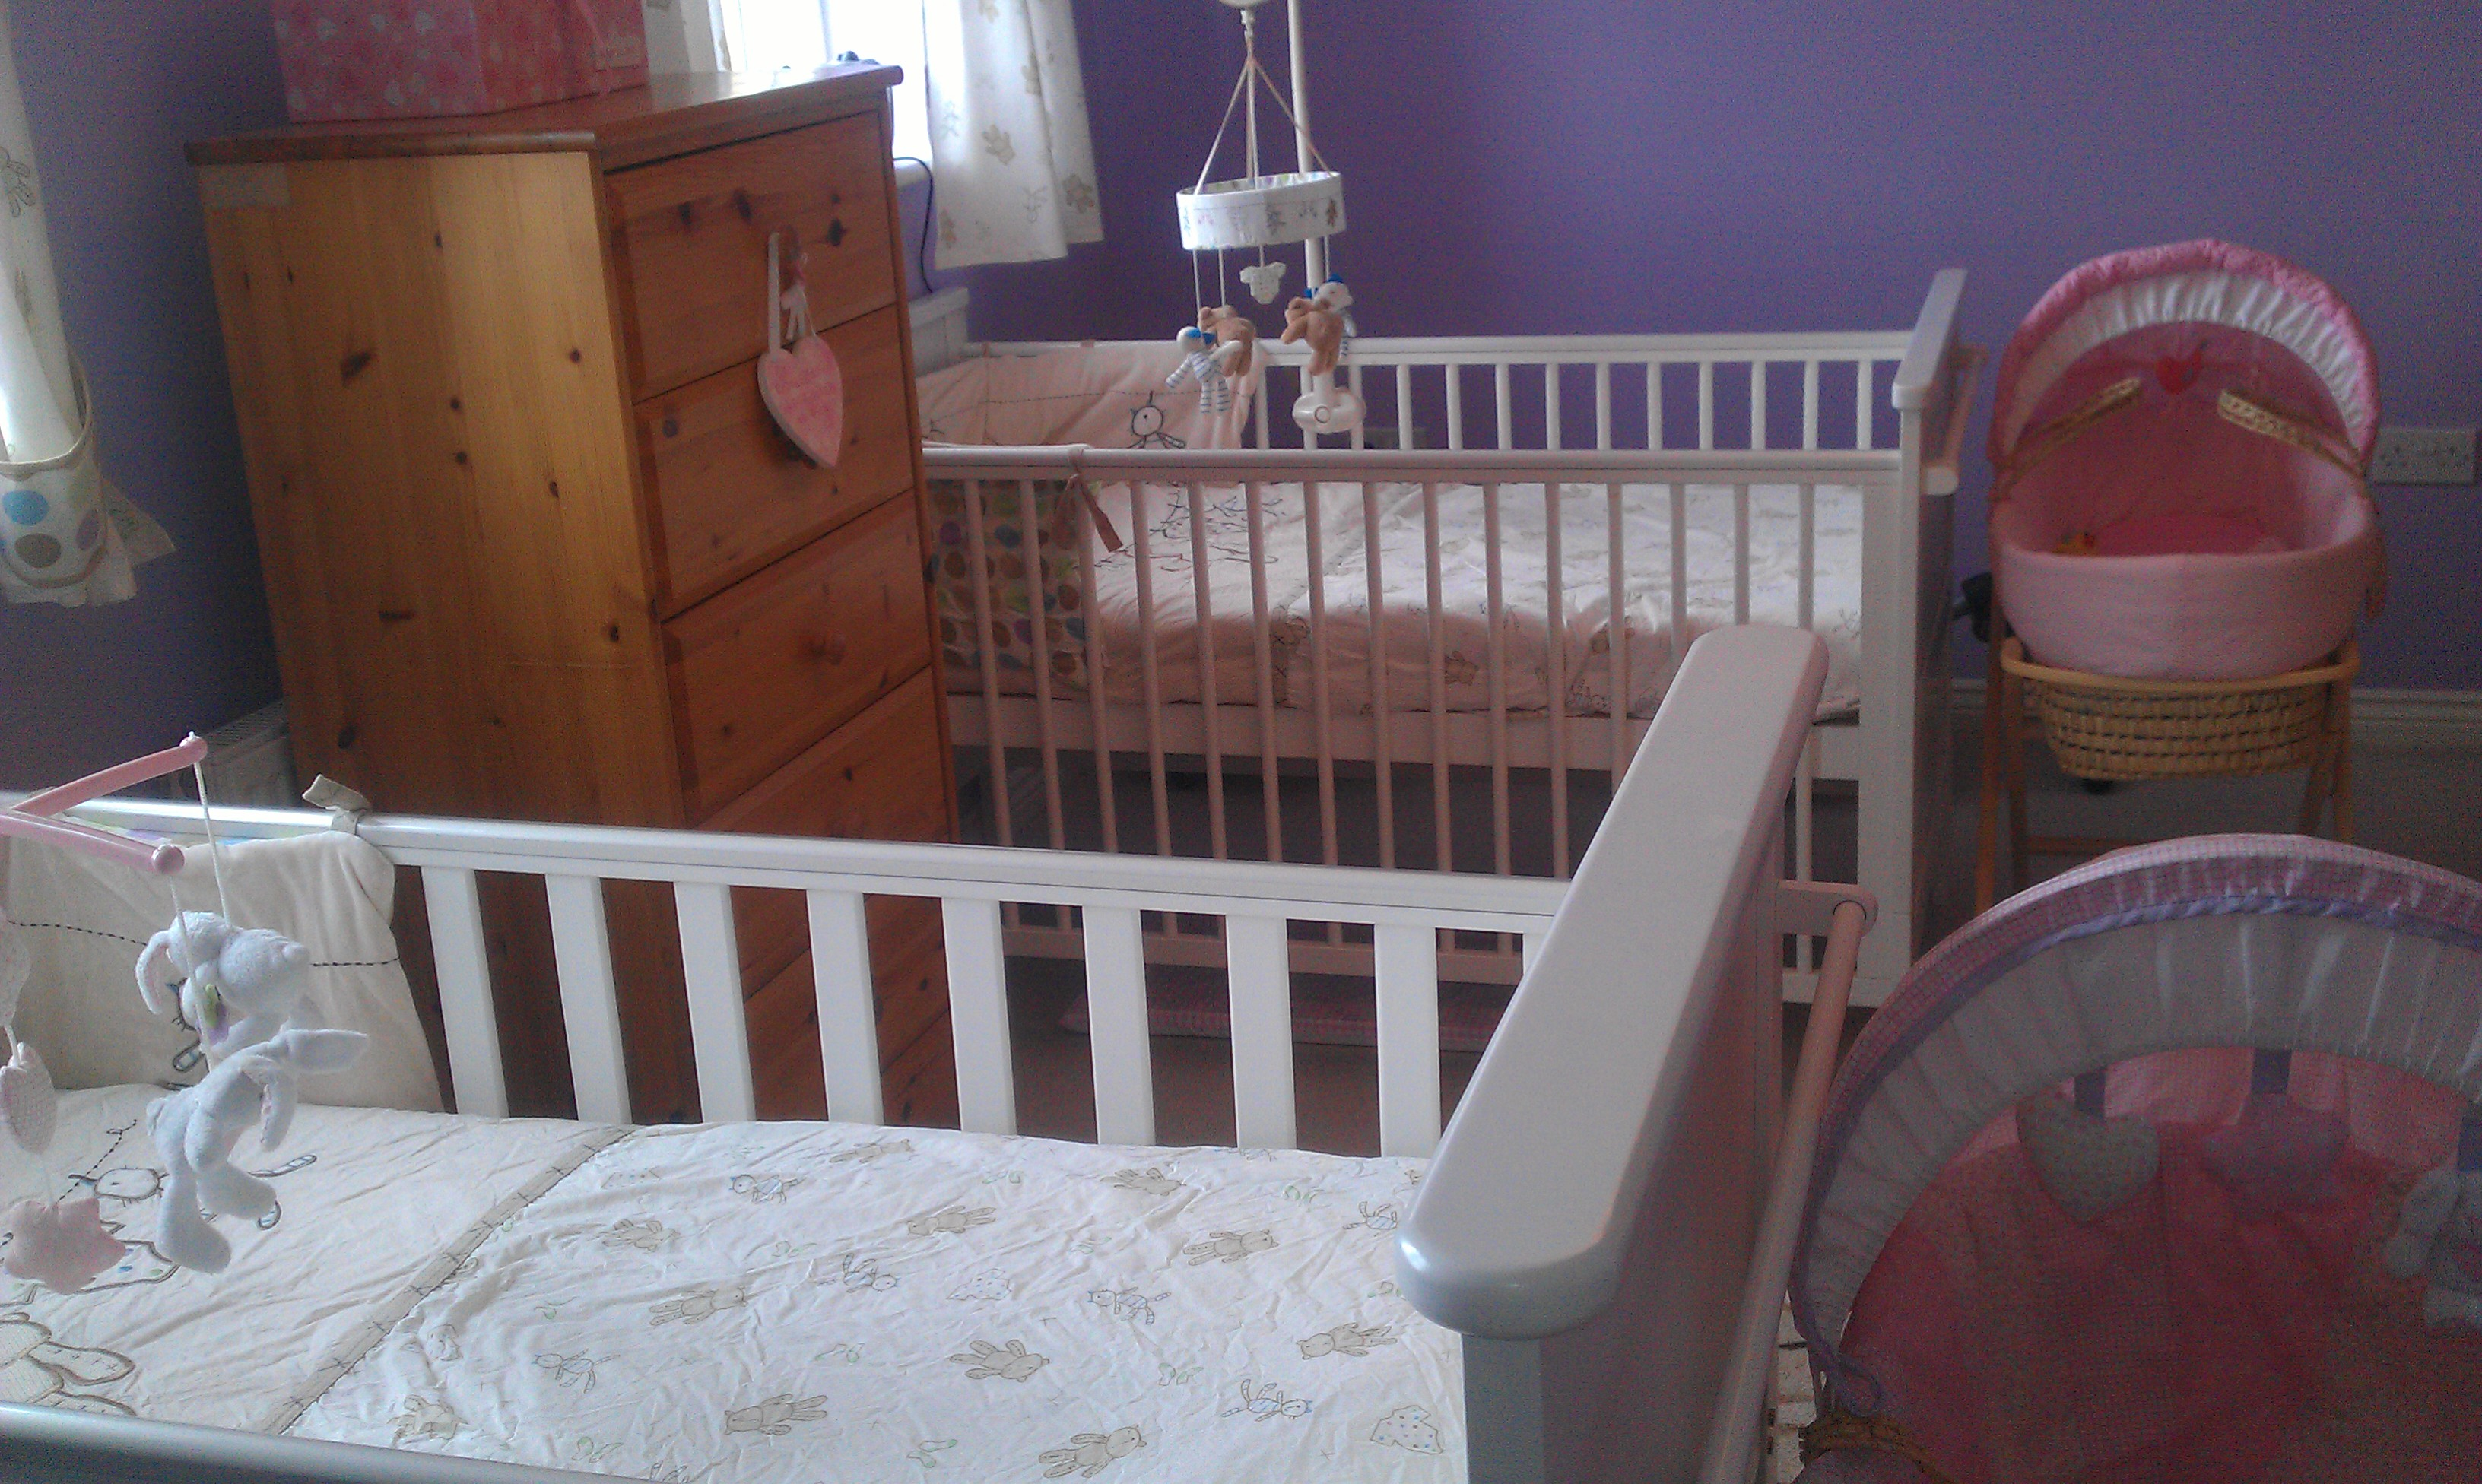 This was my twins nursery, just before they were born. This photo is part of my post on baby sleep tips.